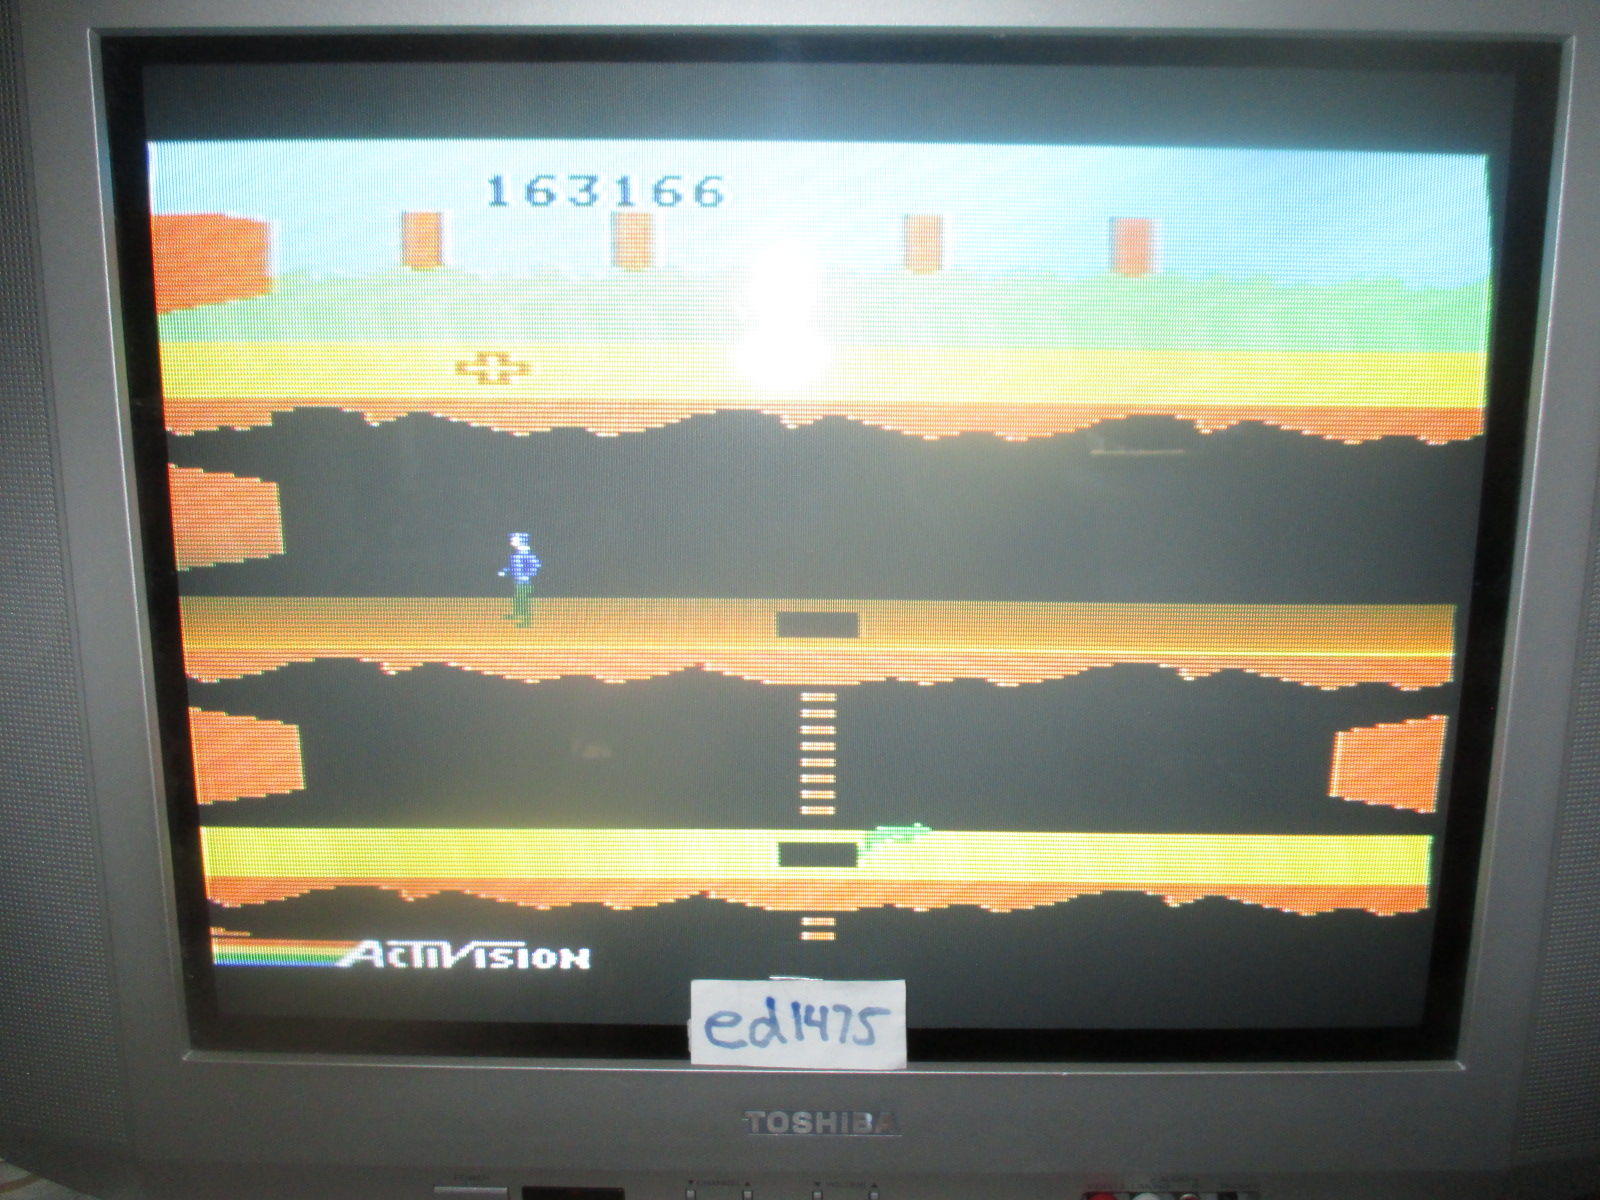 ed1475: Pitfall II: Lost Caverns (Colecovision) 163,166 points on 2014-07-13 21:15:17